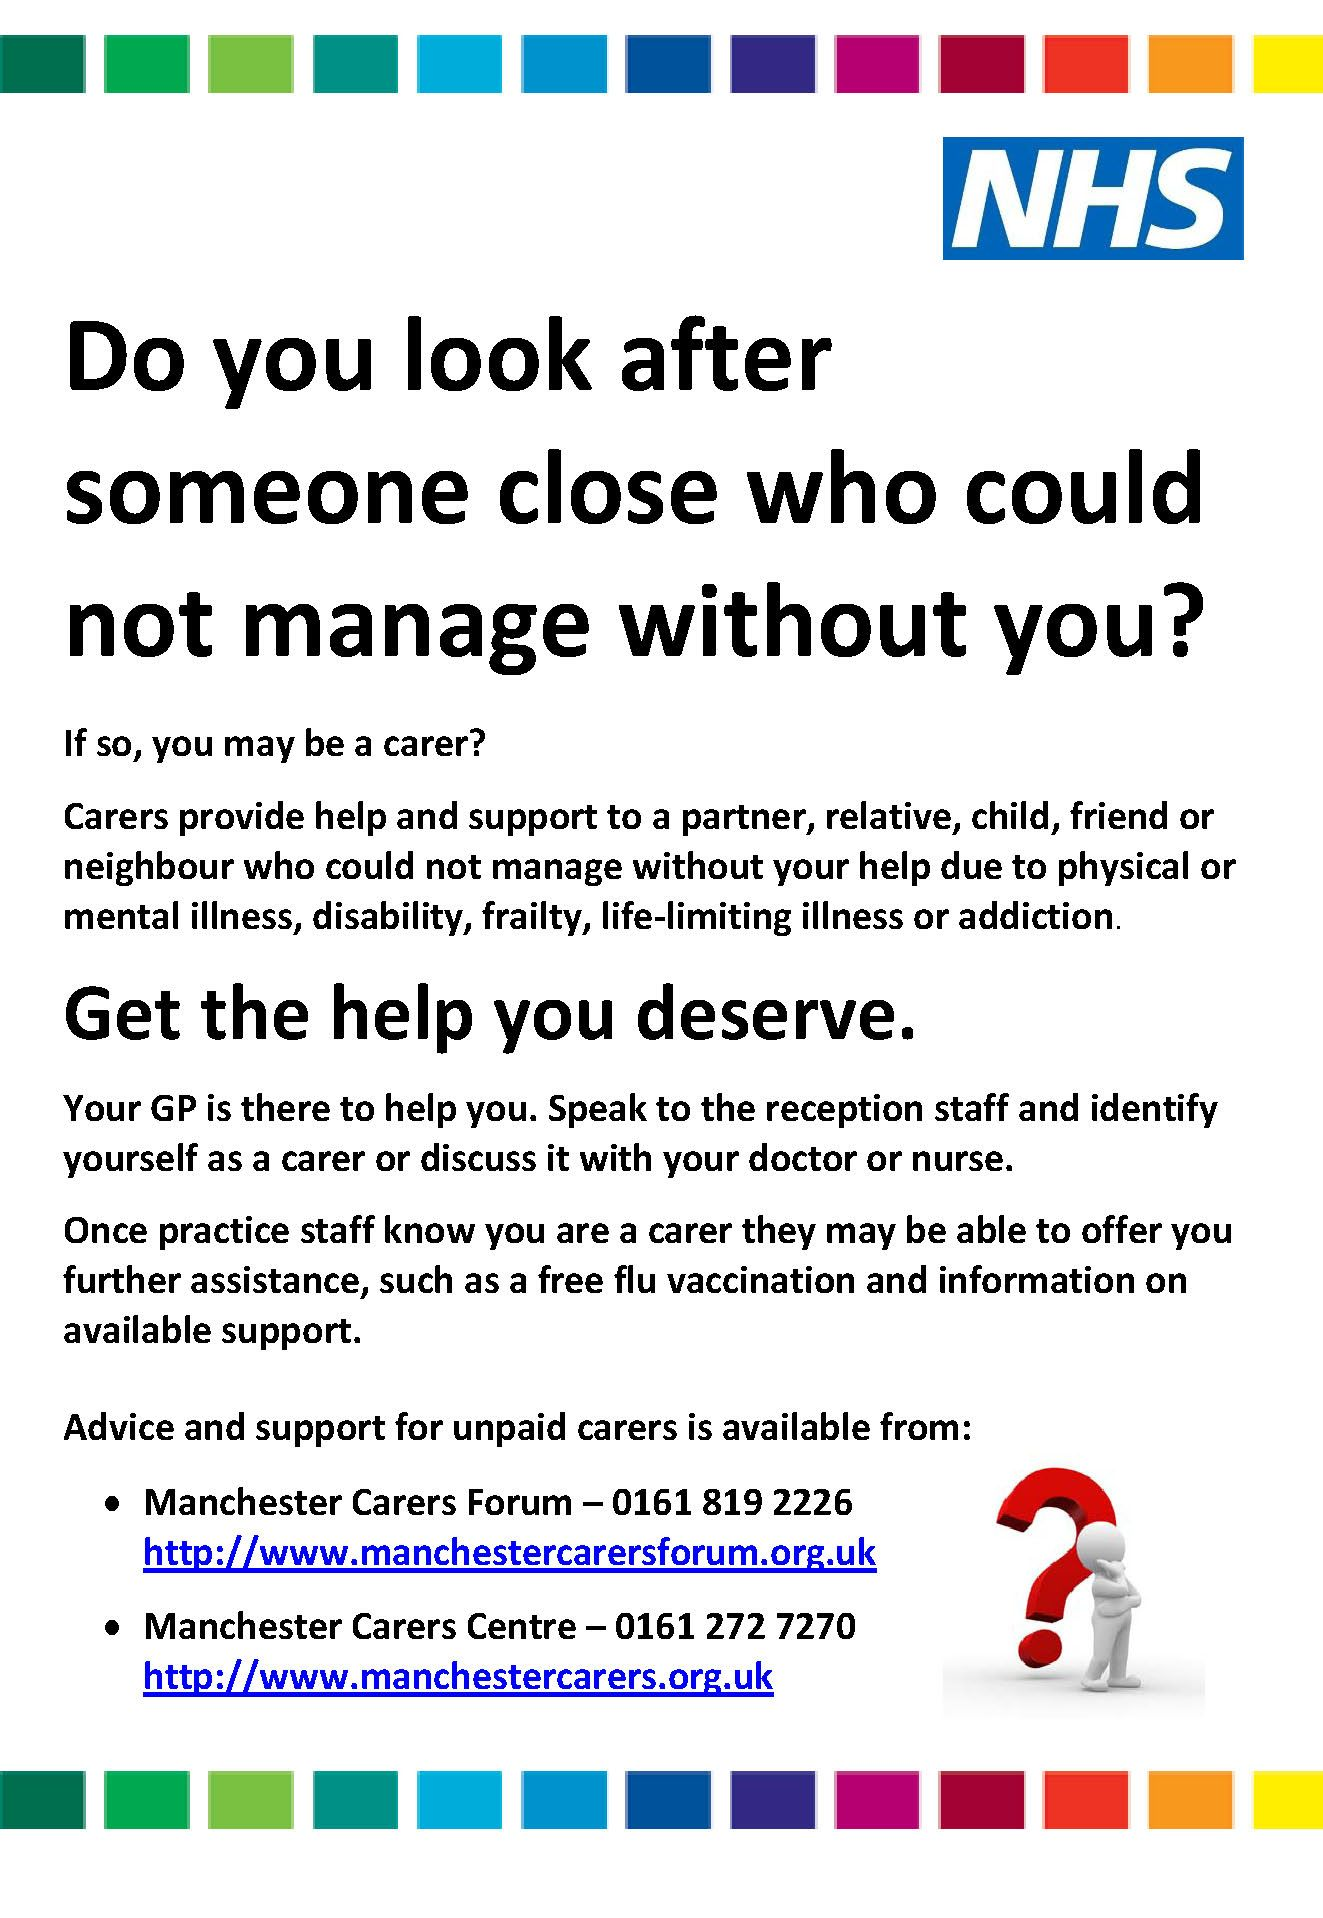 Gp Practice Awareness Poster To Identify Unpaid Carers Carer